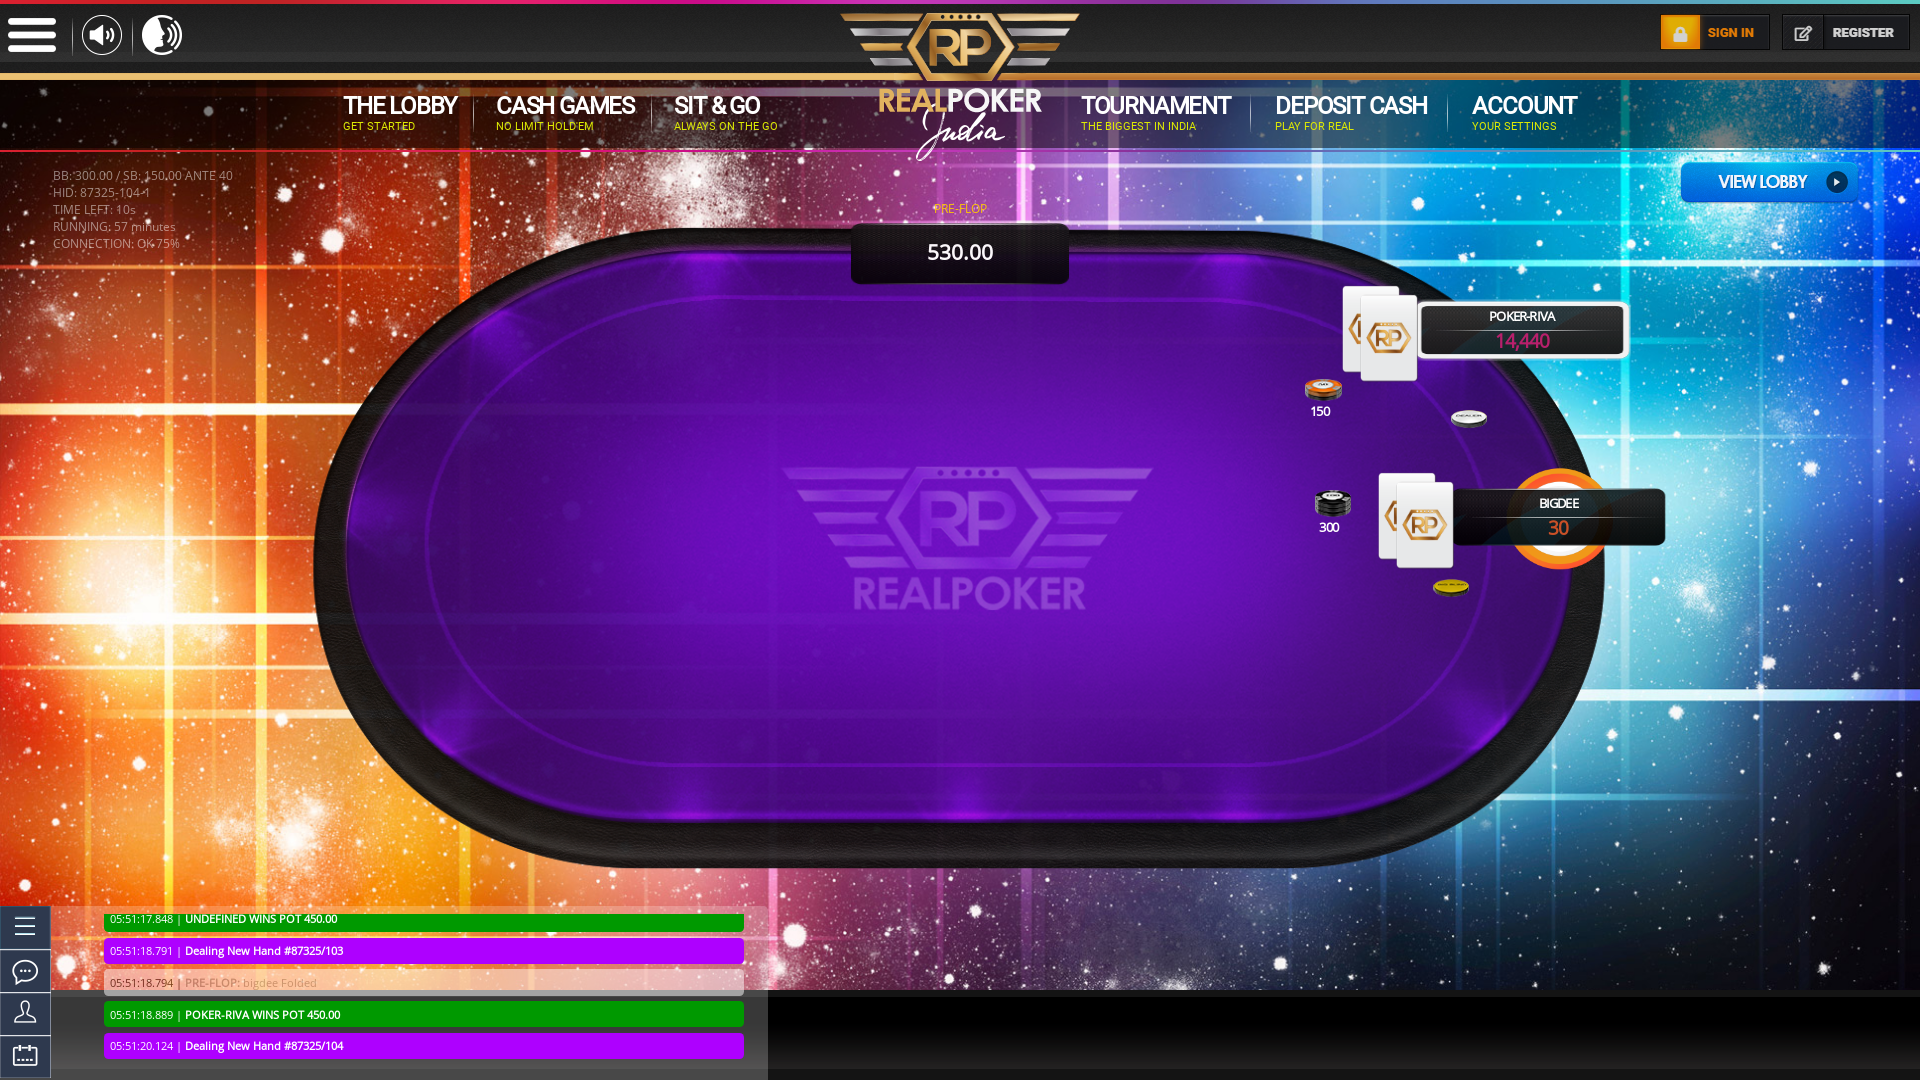 Indian online poker on a 10 player table in the 57th minute match up